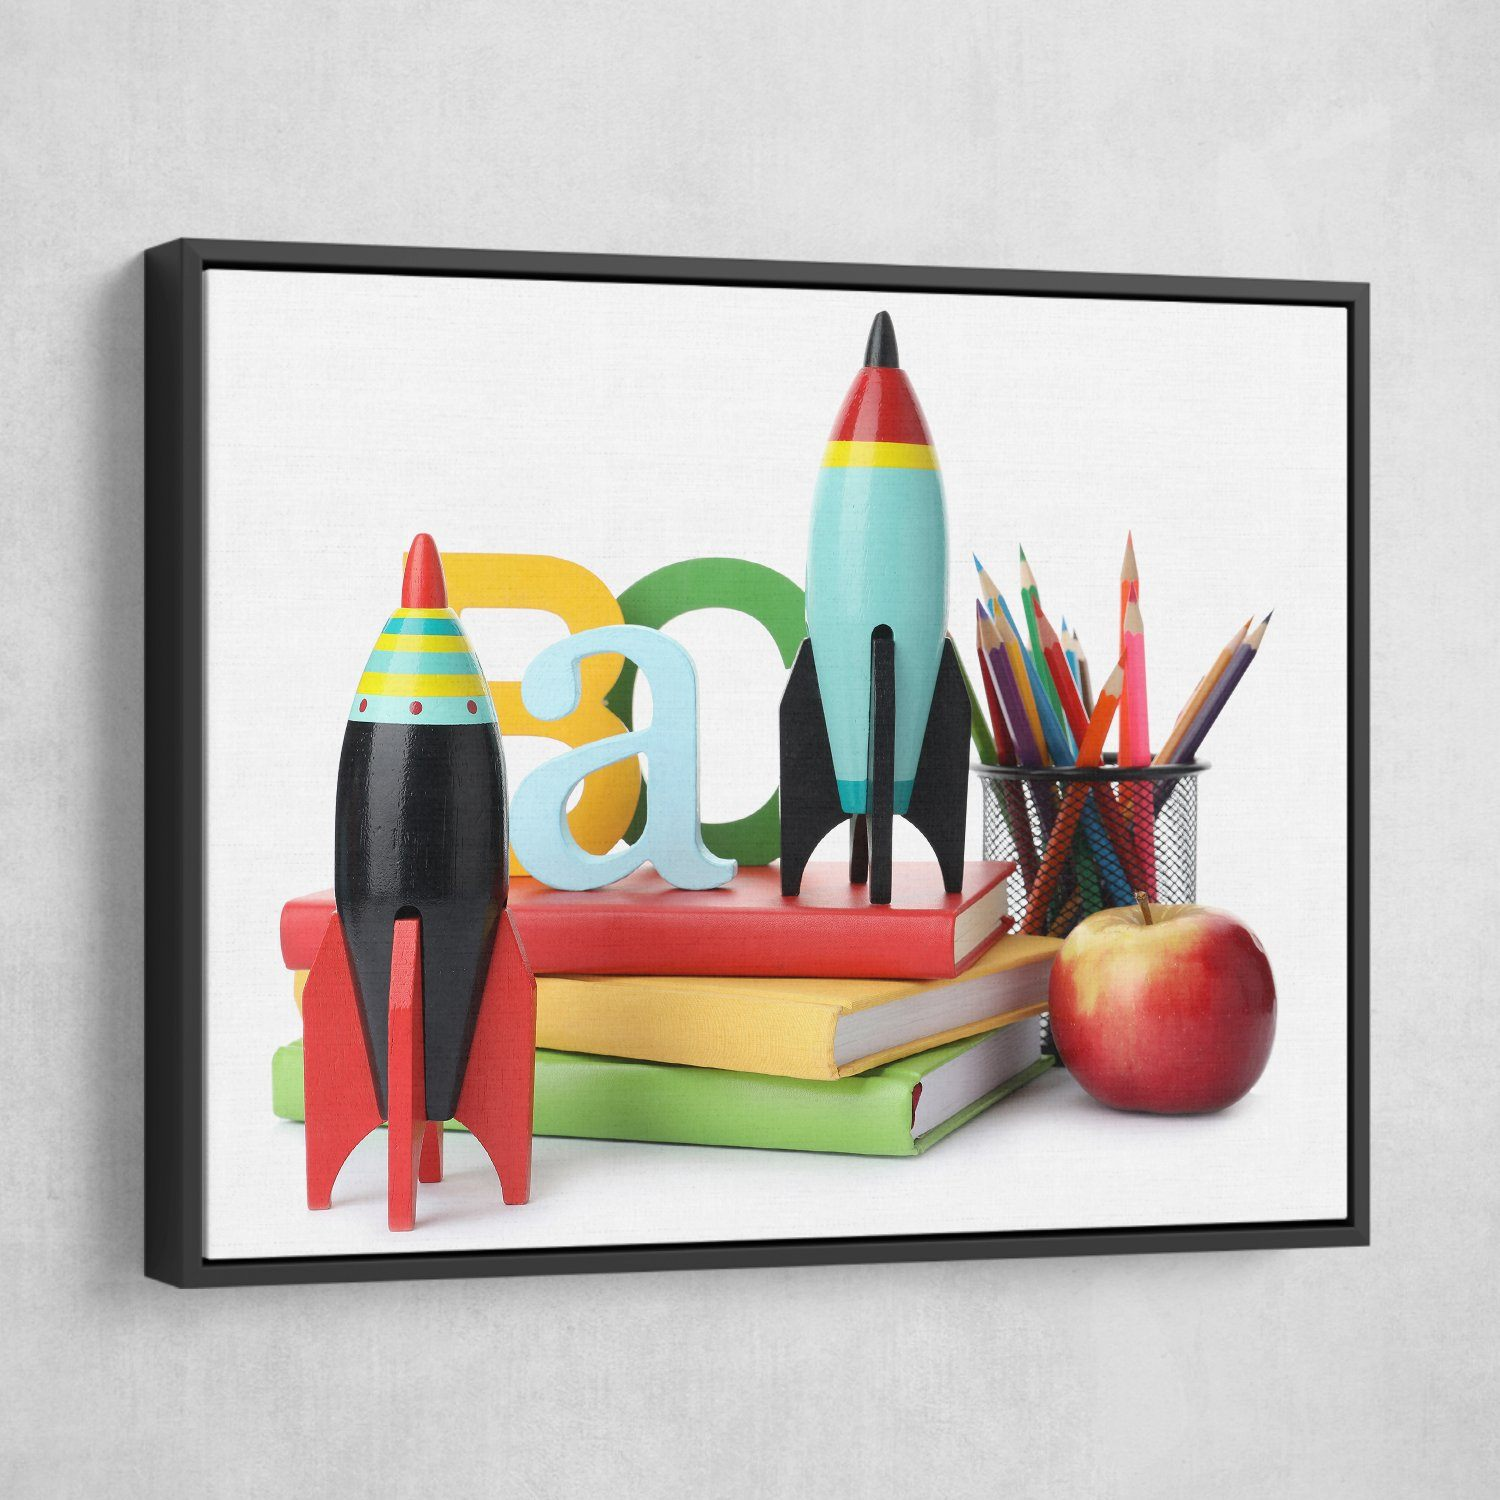 Rockets wall art black frame